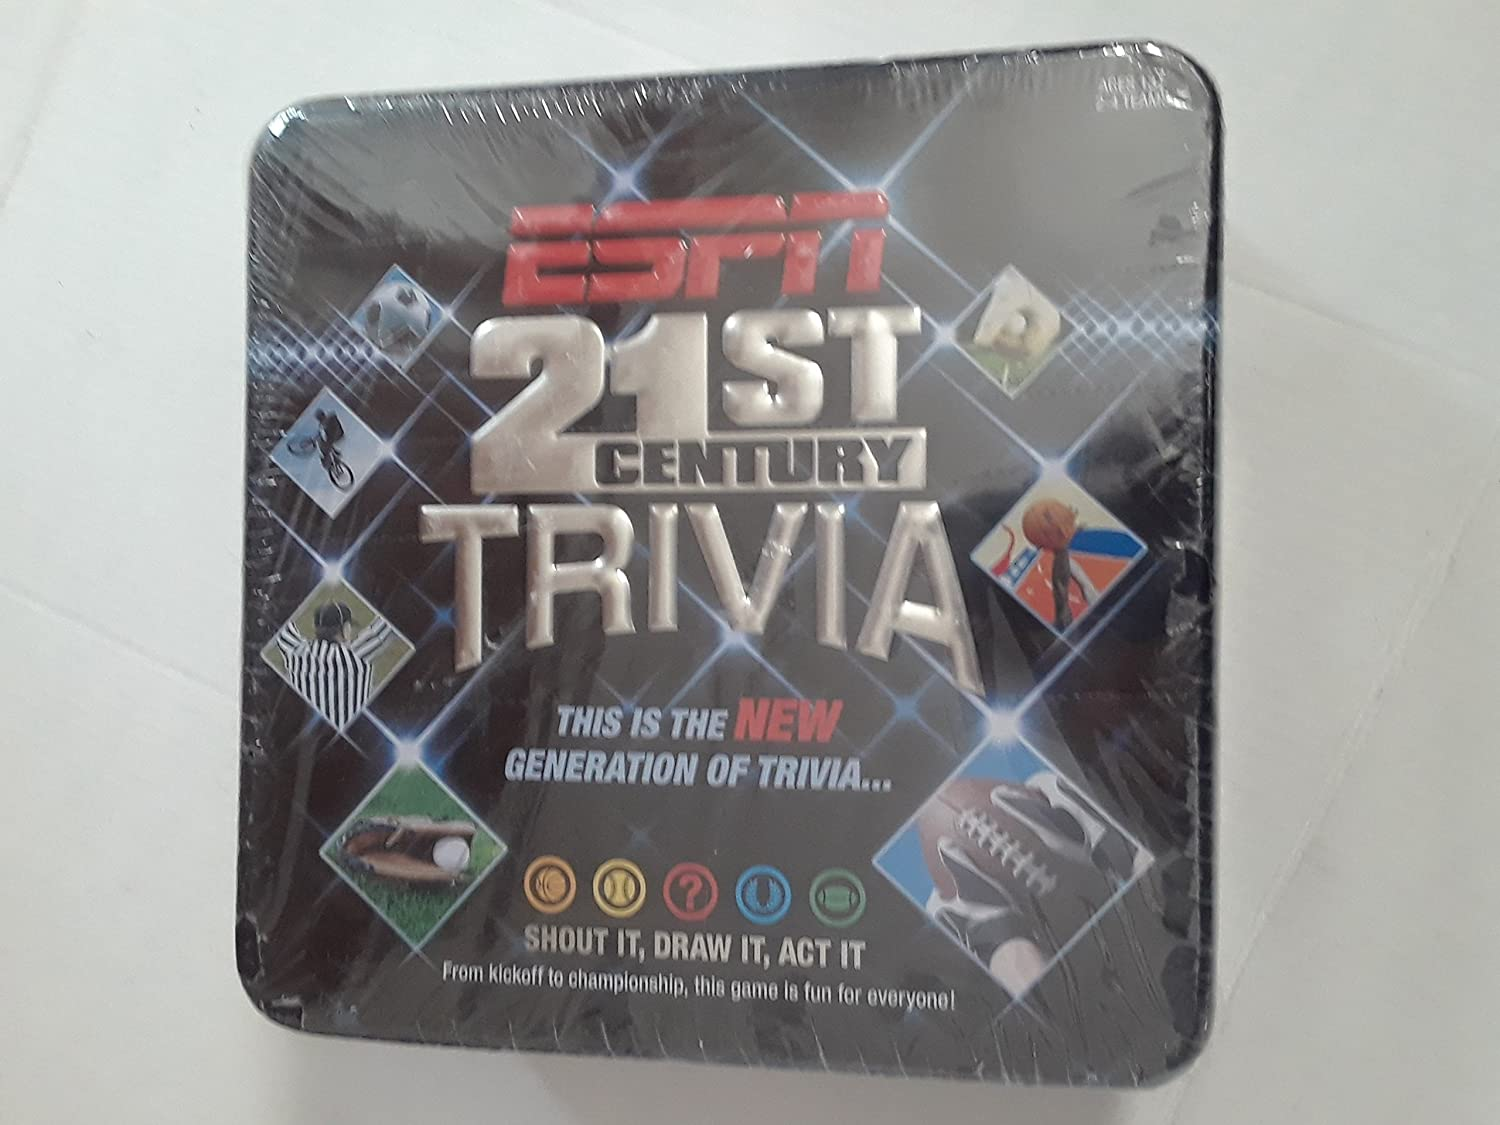 Espn Trivia Board Game In Collector S Tin Toys Games Amazon Com